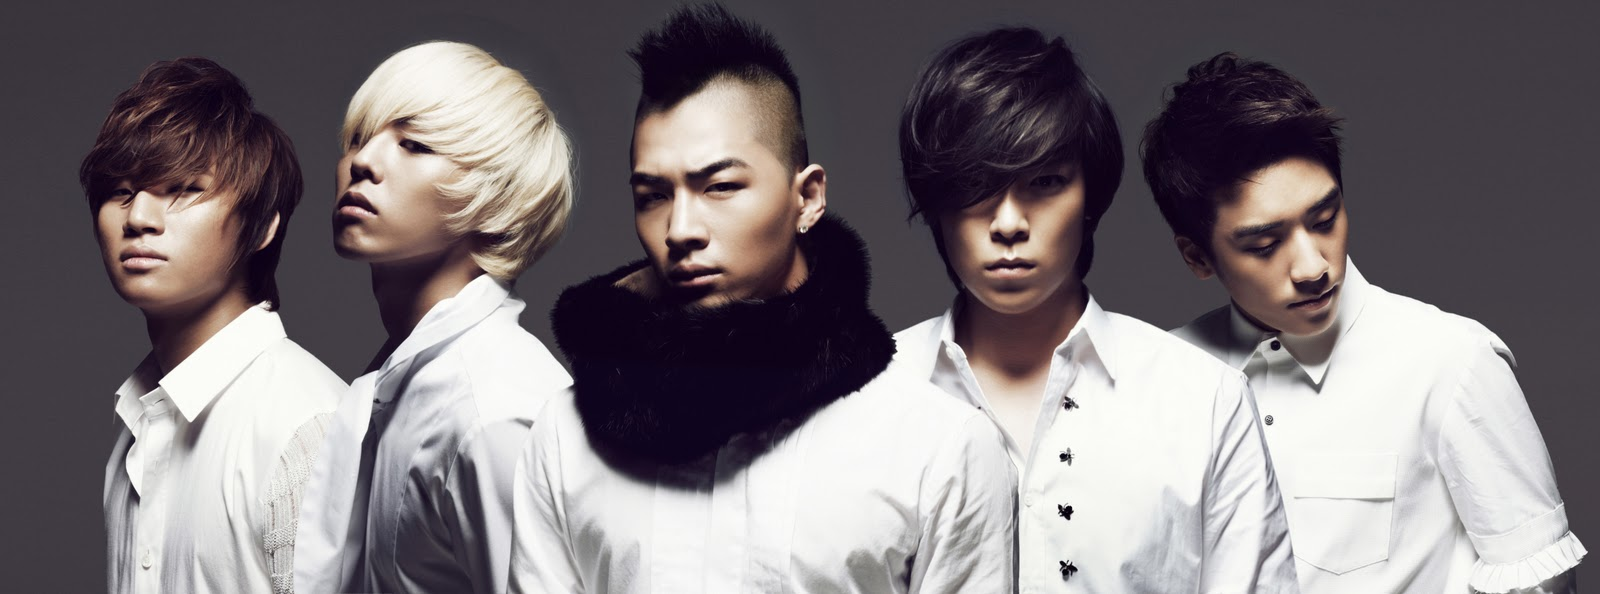 Best Big Bang Wallpaper  Take Wallpaper